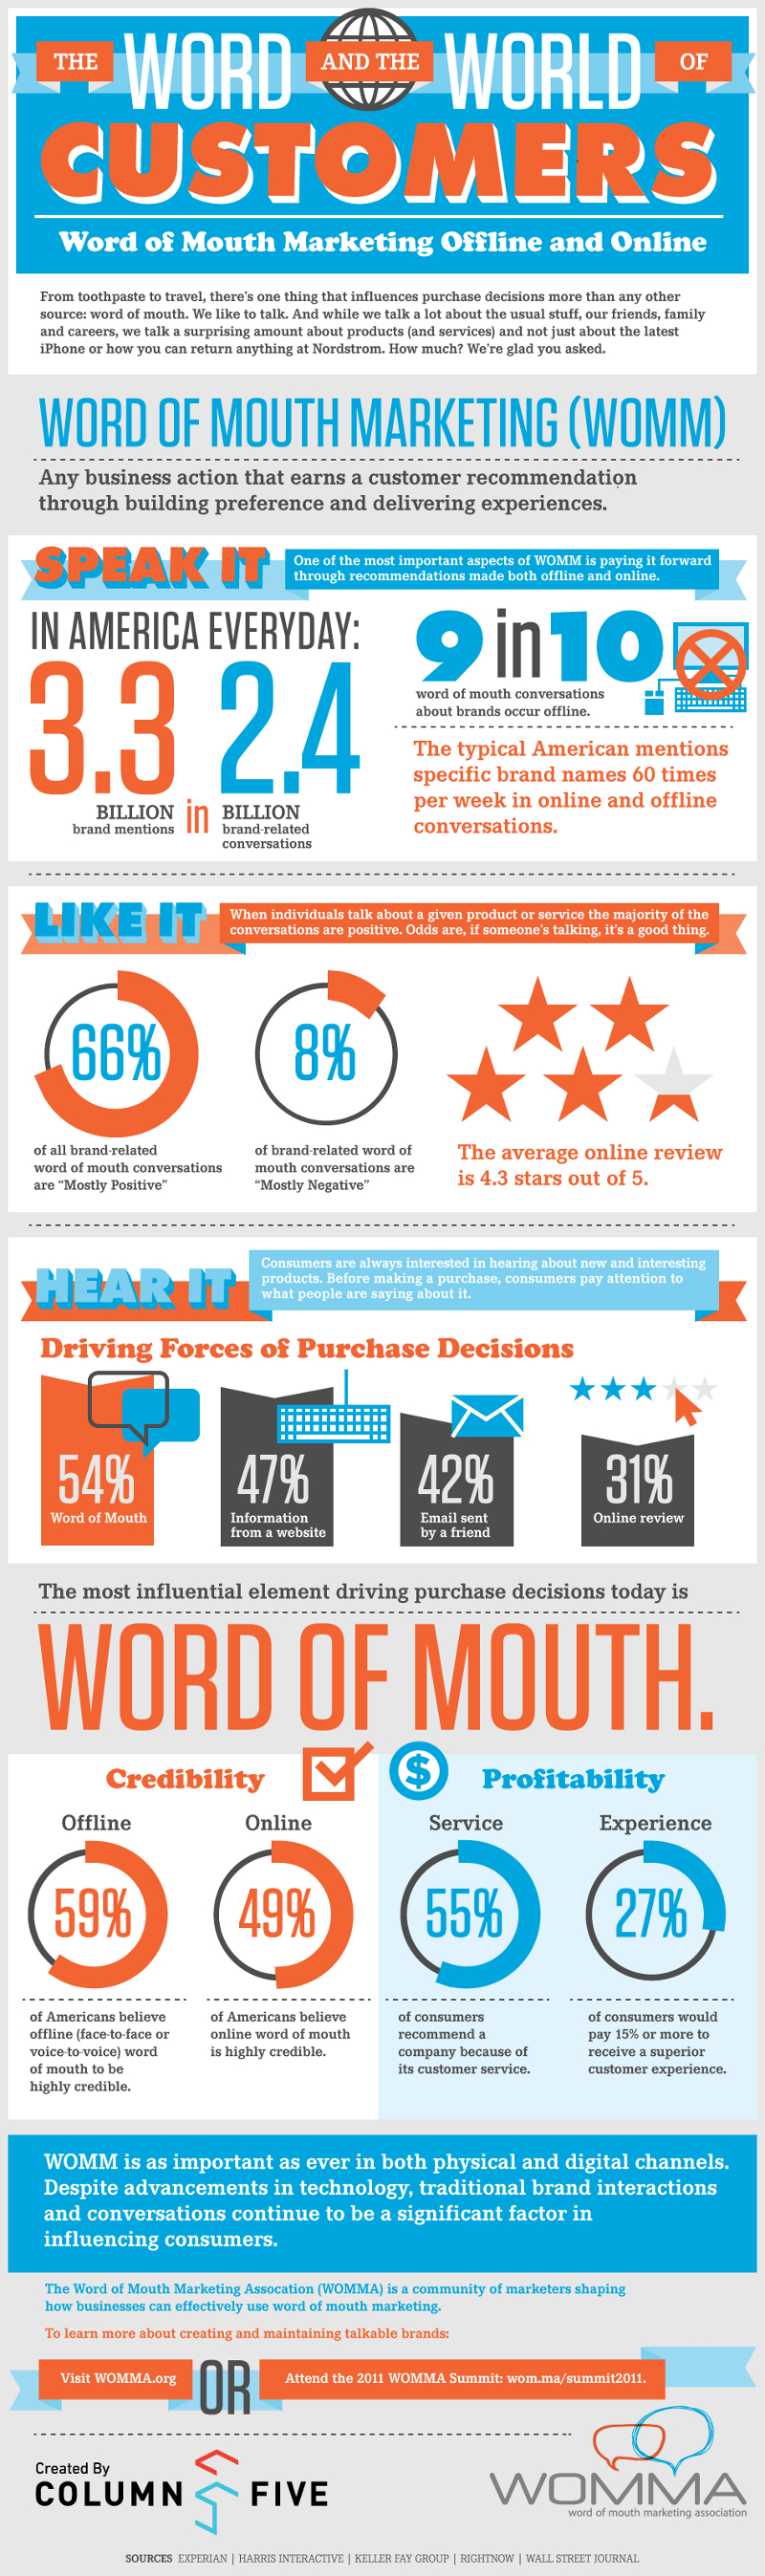 Impact of Word of Mouth Marketing